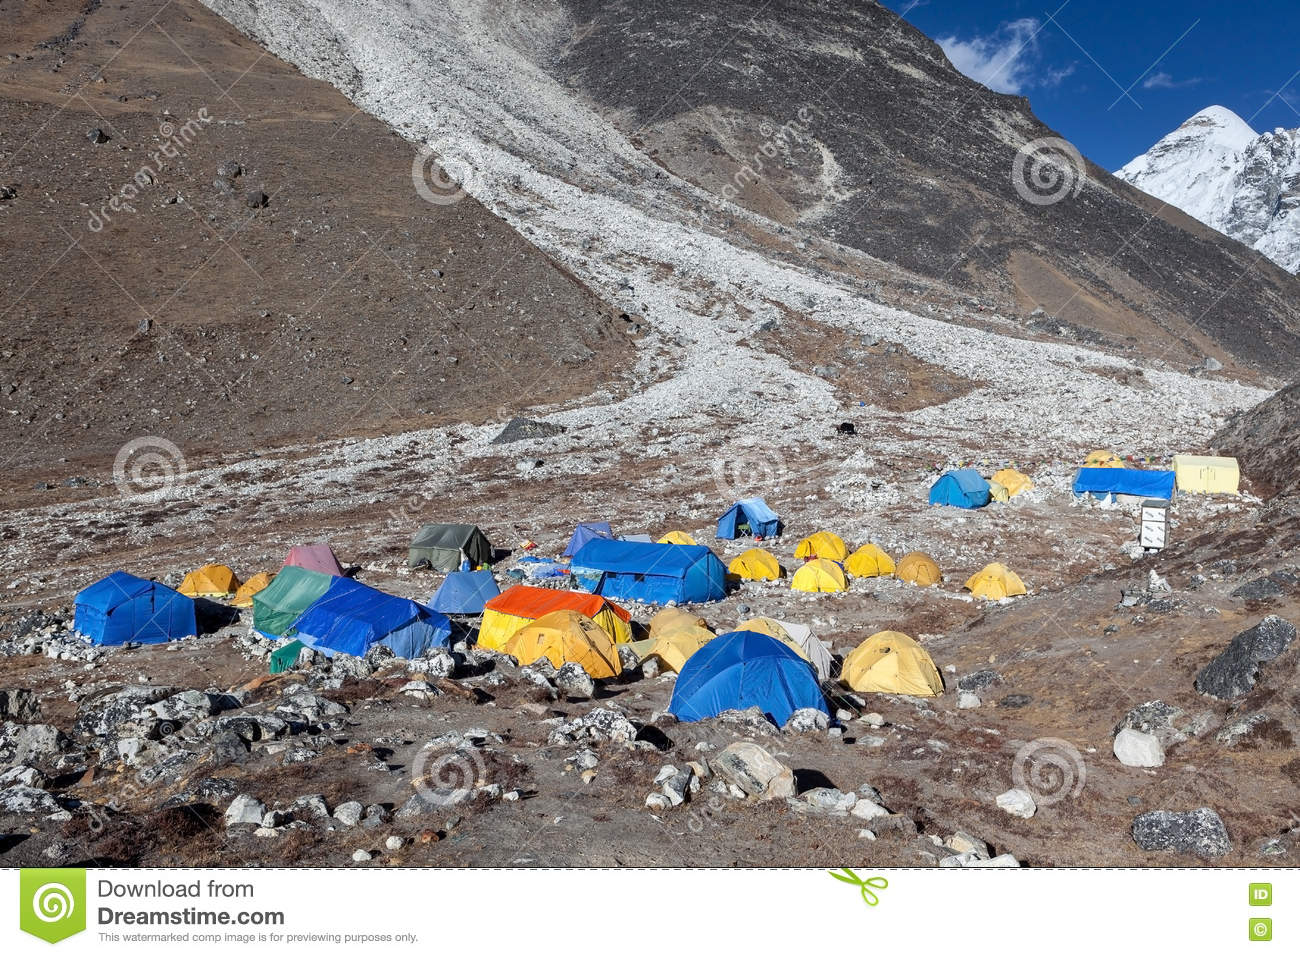 CAMPO BASE TREK/NEPAL DI EVEREST - 25 OTTOBRE 2015